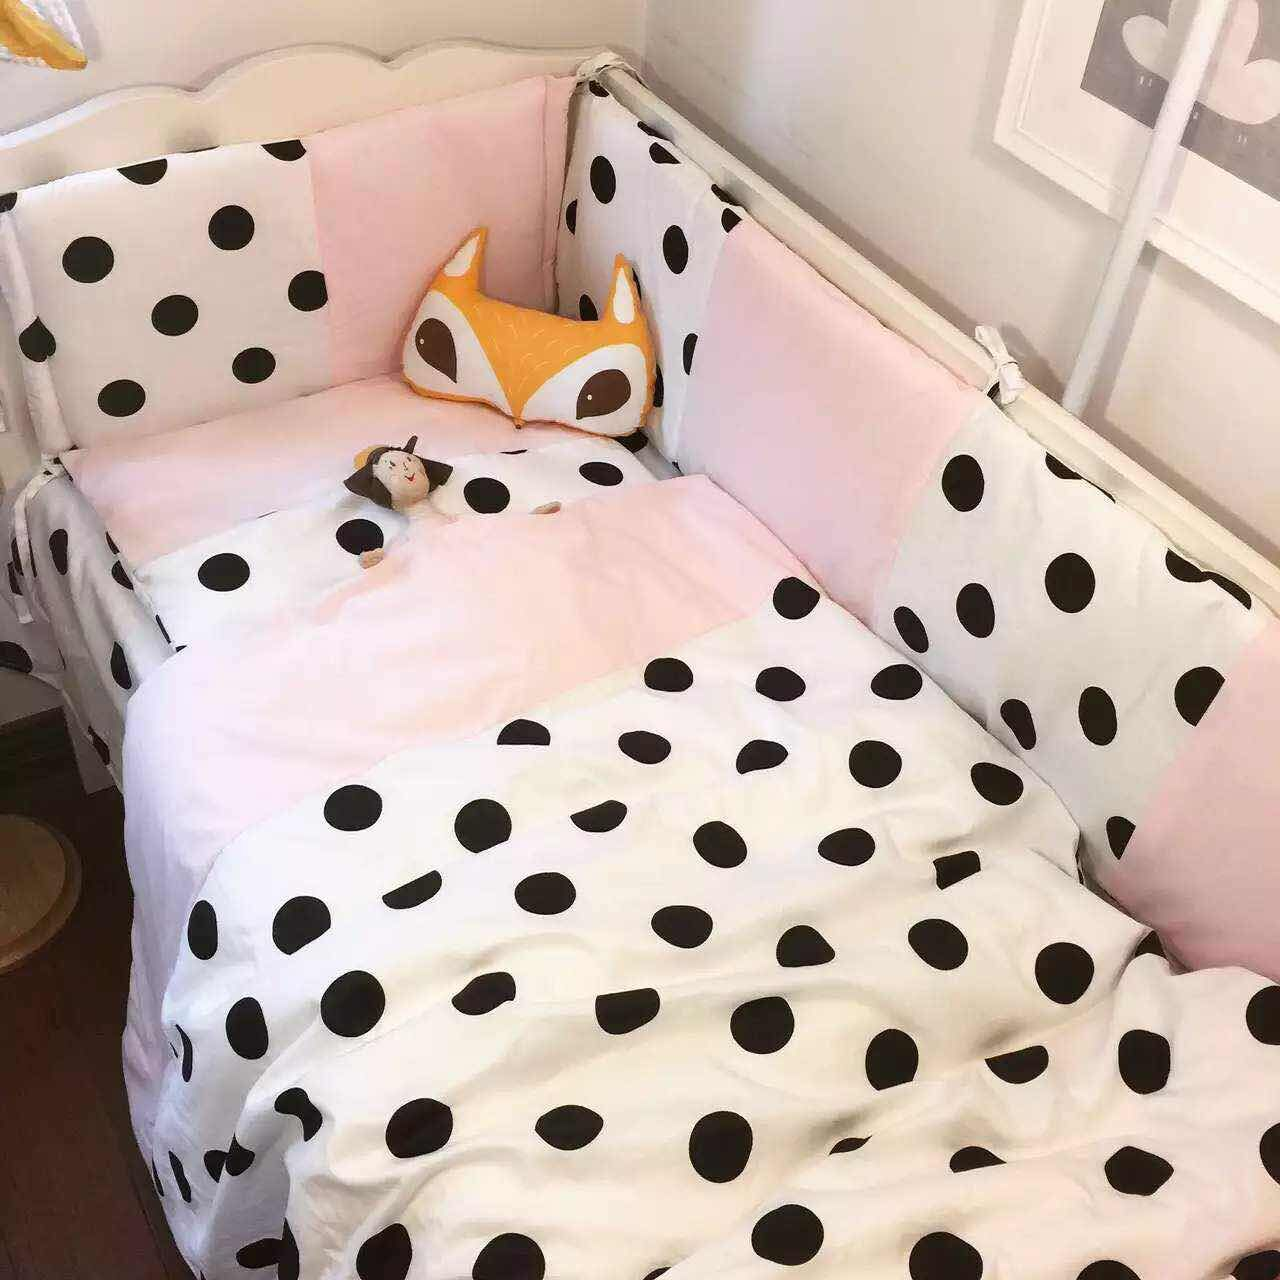 Baby bed sheet pattern - 3cps Set 100 Cotton Hot Baby Bedding Set Include Pillowcase Flat Sheet Quilt Cover